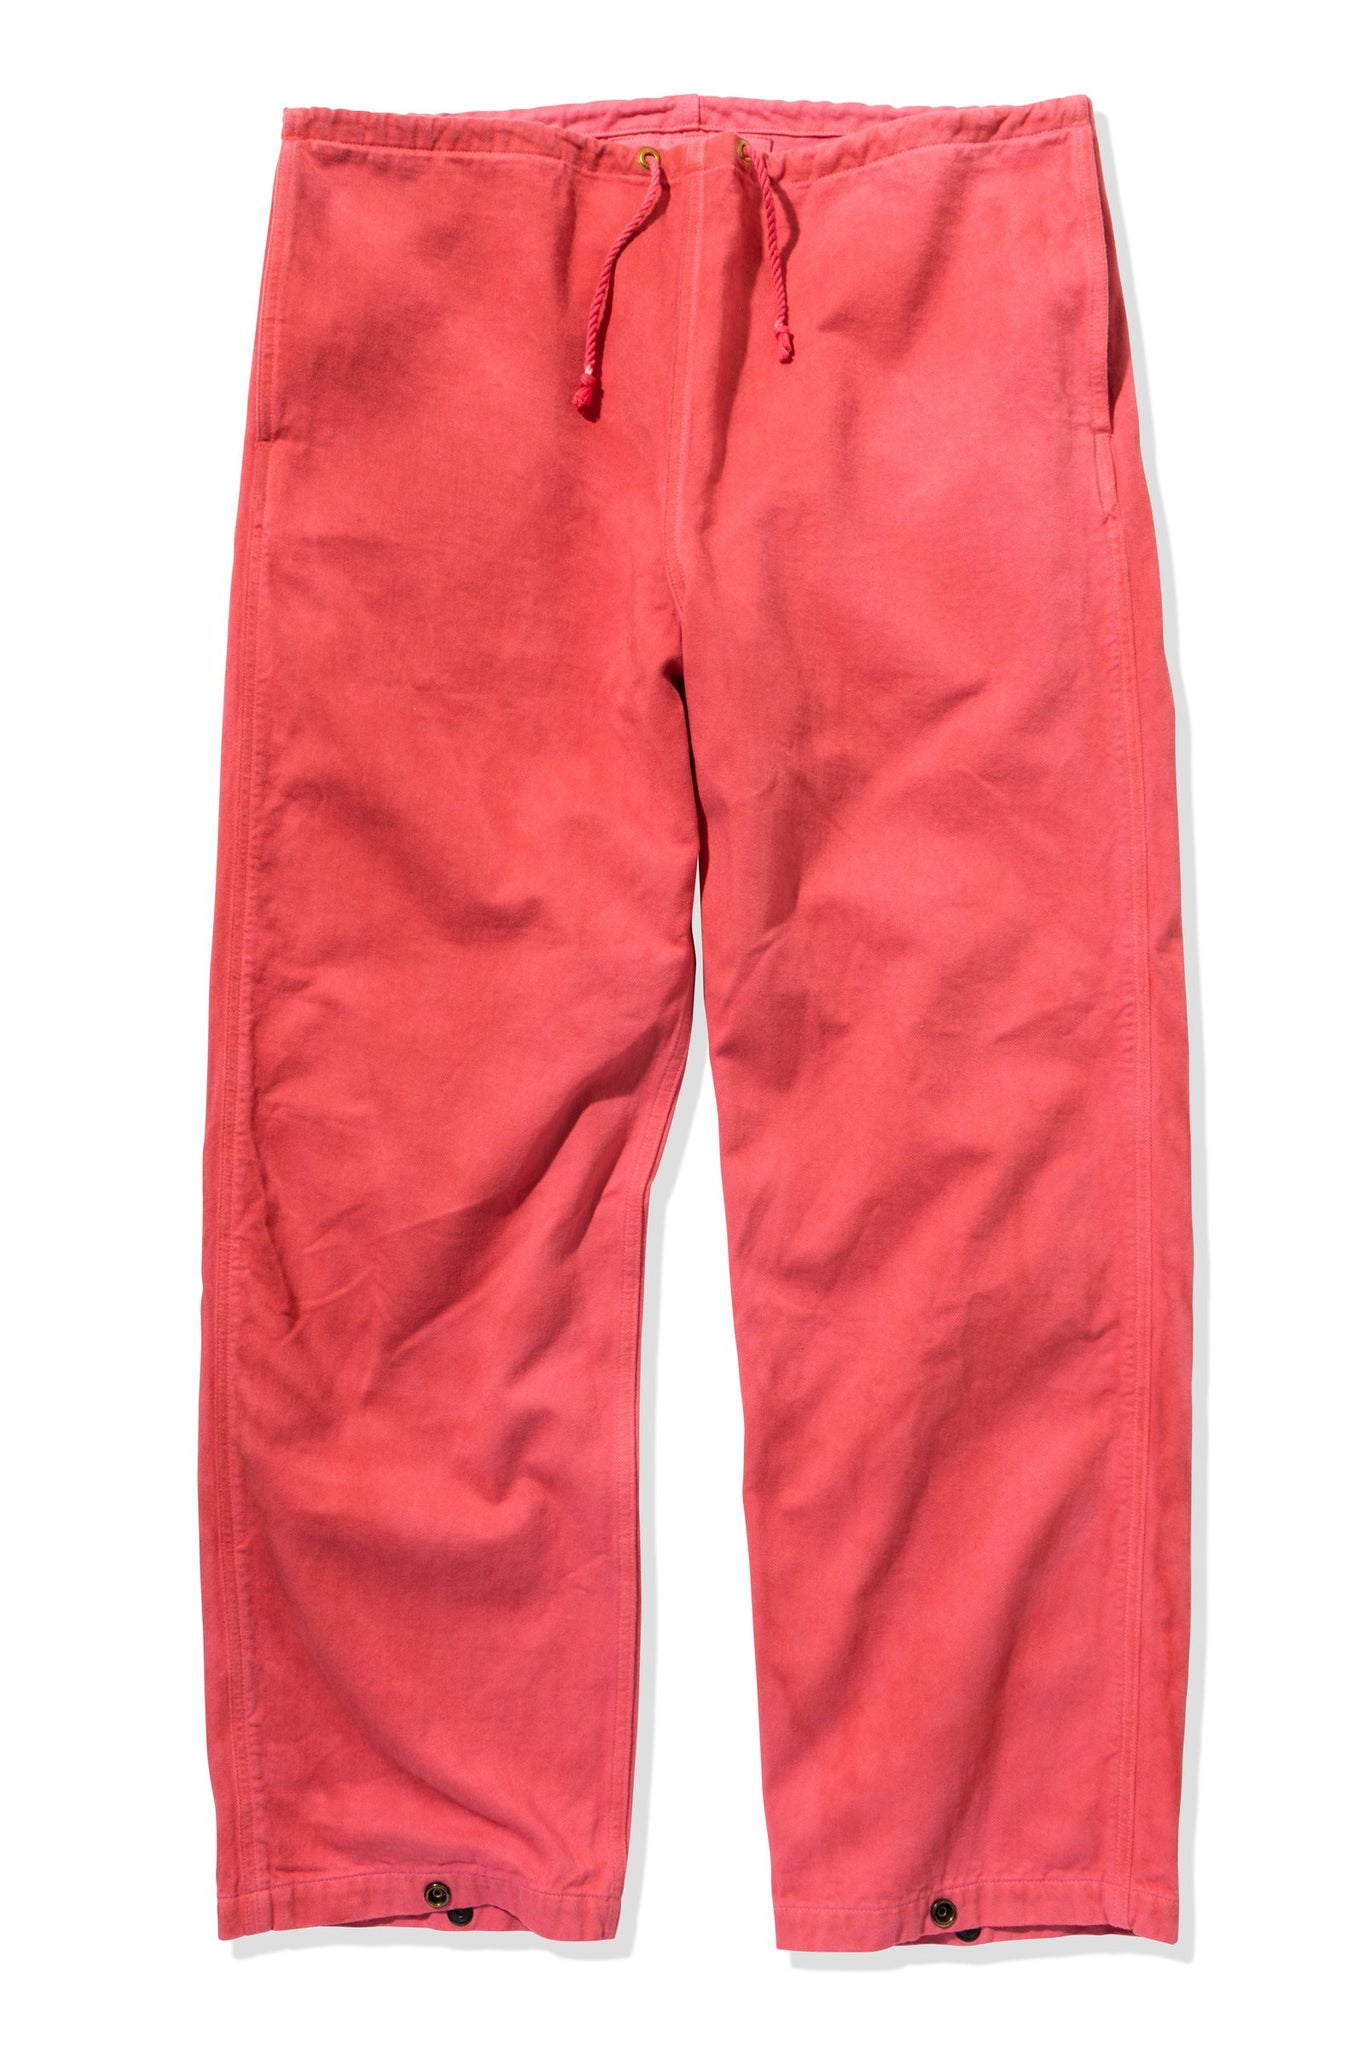 USN SALVAGE TROUSERS (OVER-DYED)